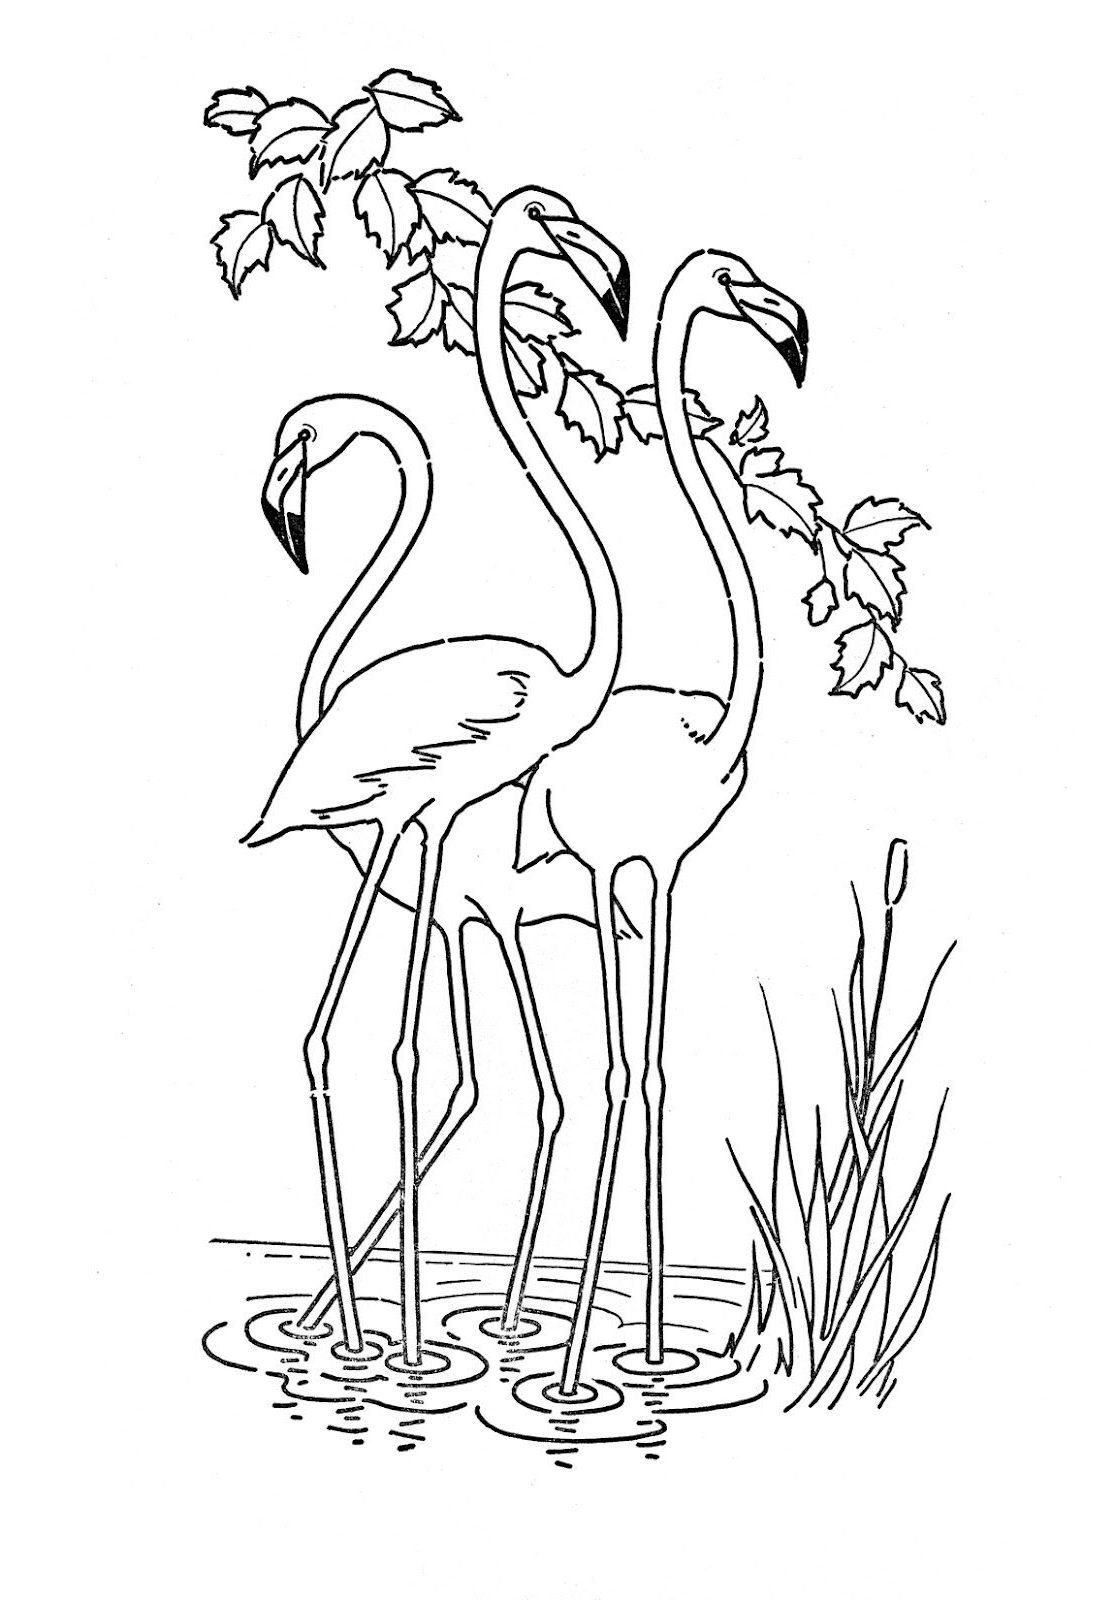 animal coloring animal coloring pages for adults best coloring pages for coloring animal